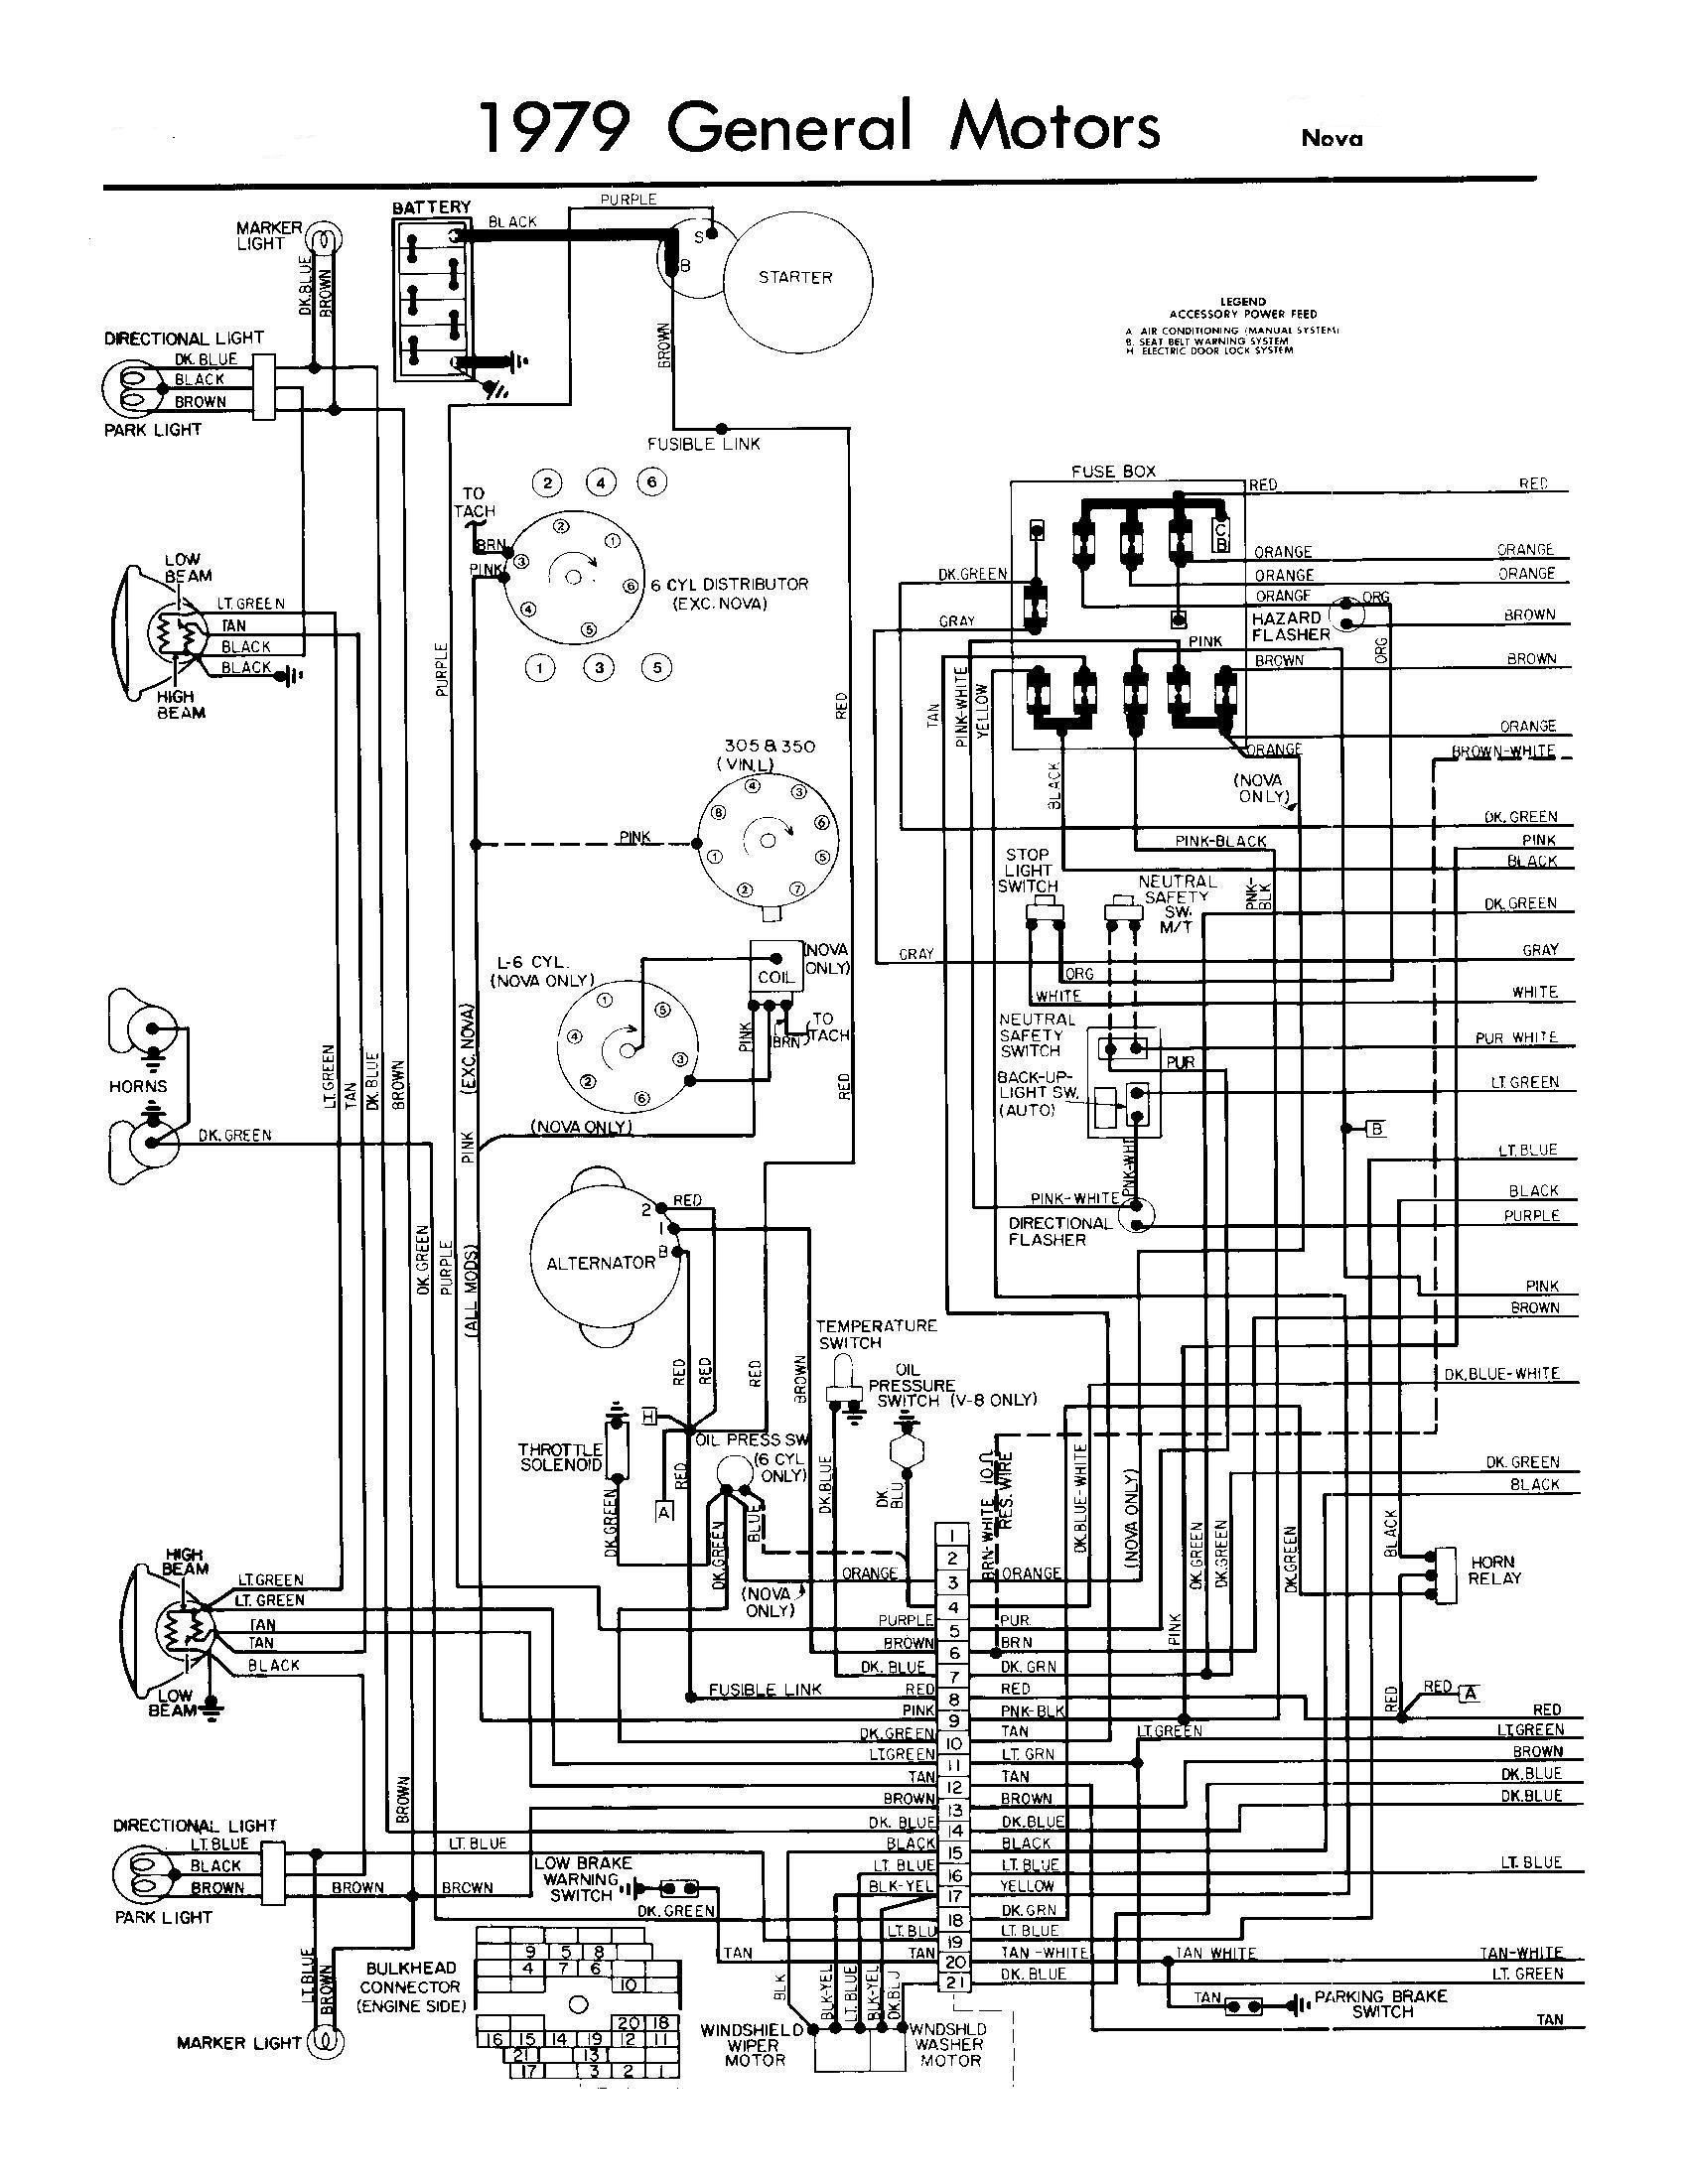 All Generation Wiring Schematics Chevy Nova Forum | Custom 79' GMC Truck  Suburban Escape